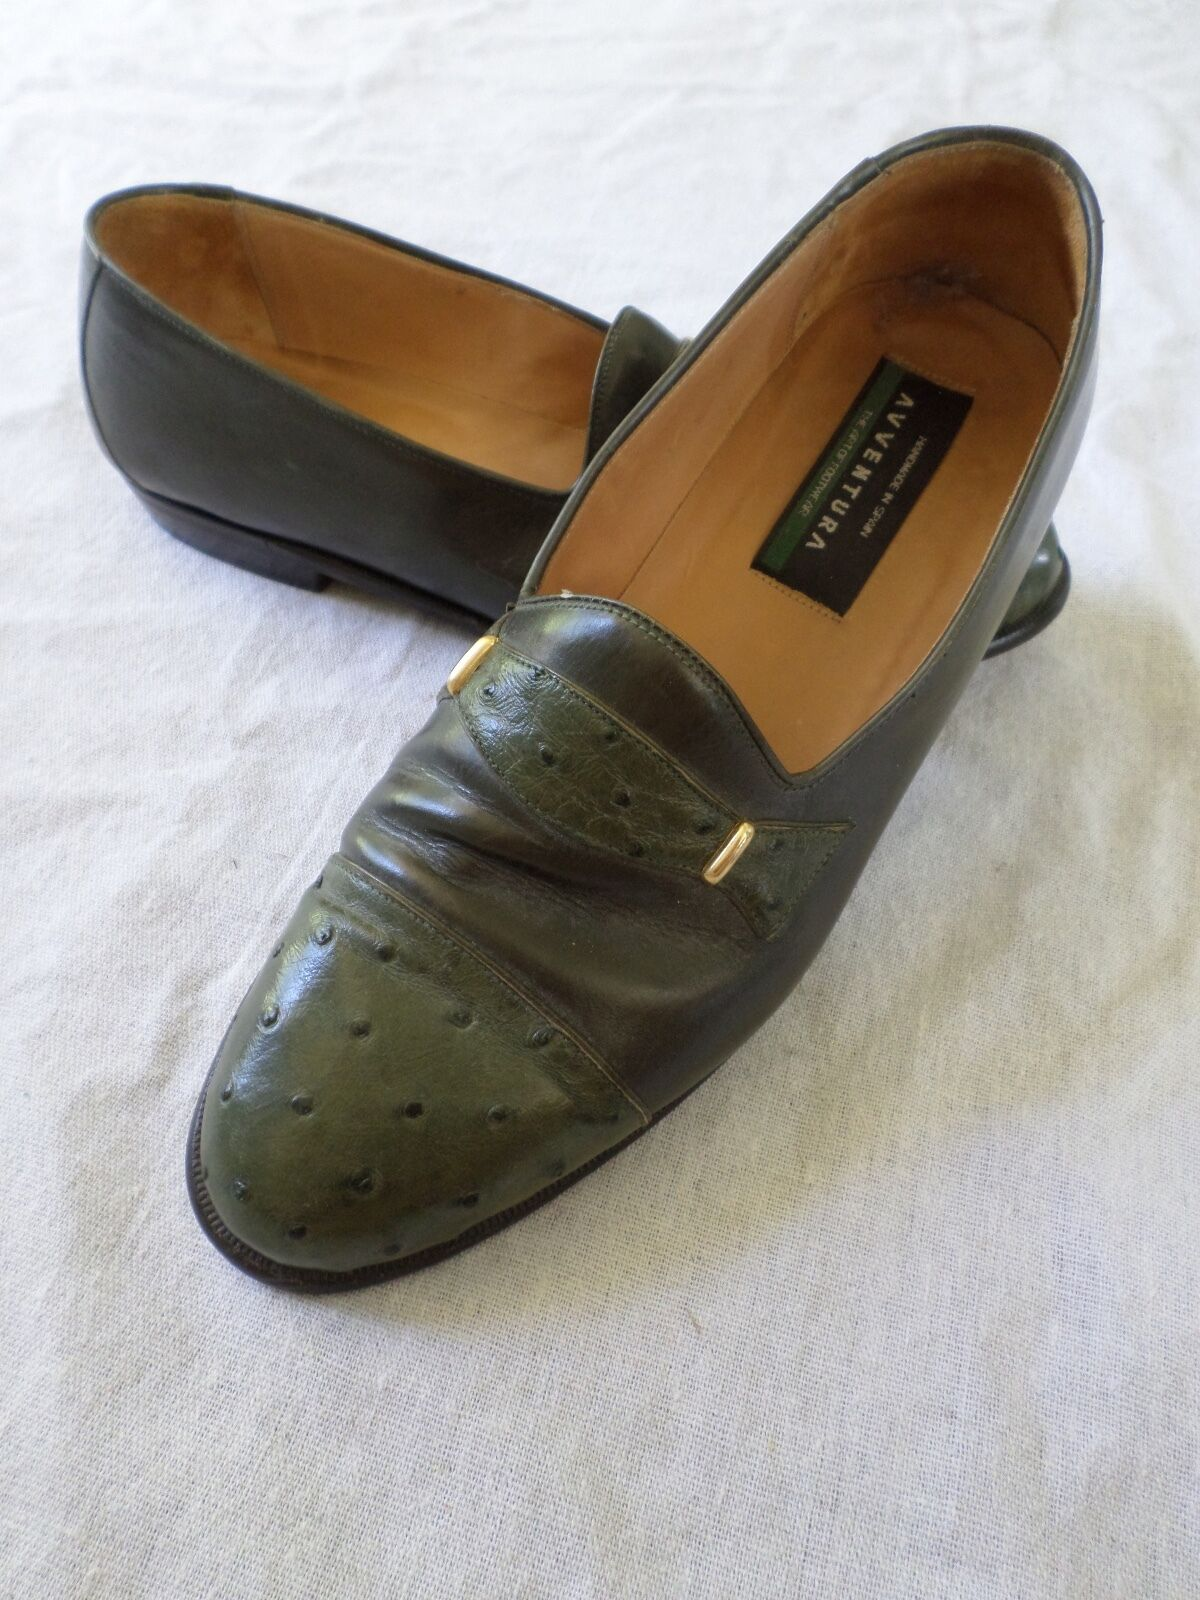 AVVENTURA made Spain modern green leather ostrich dress shoe loafers 8.5M Scarpe classiche da uomo